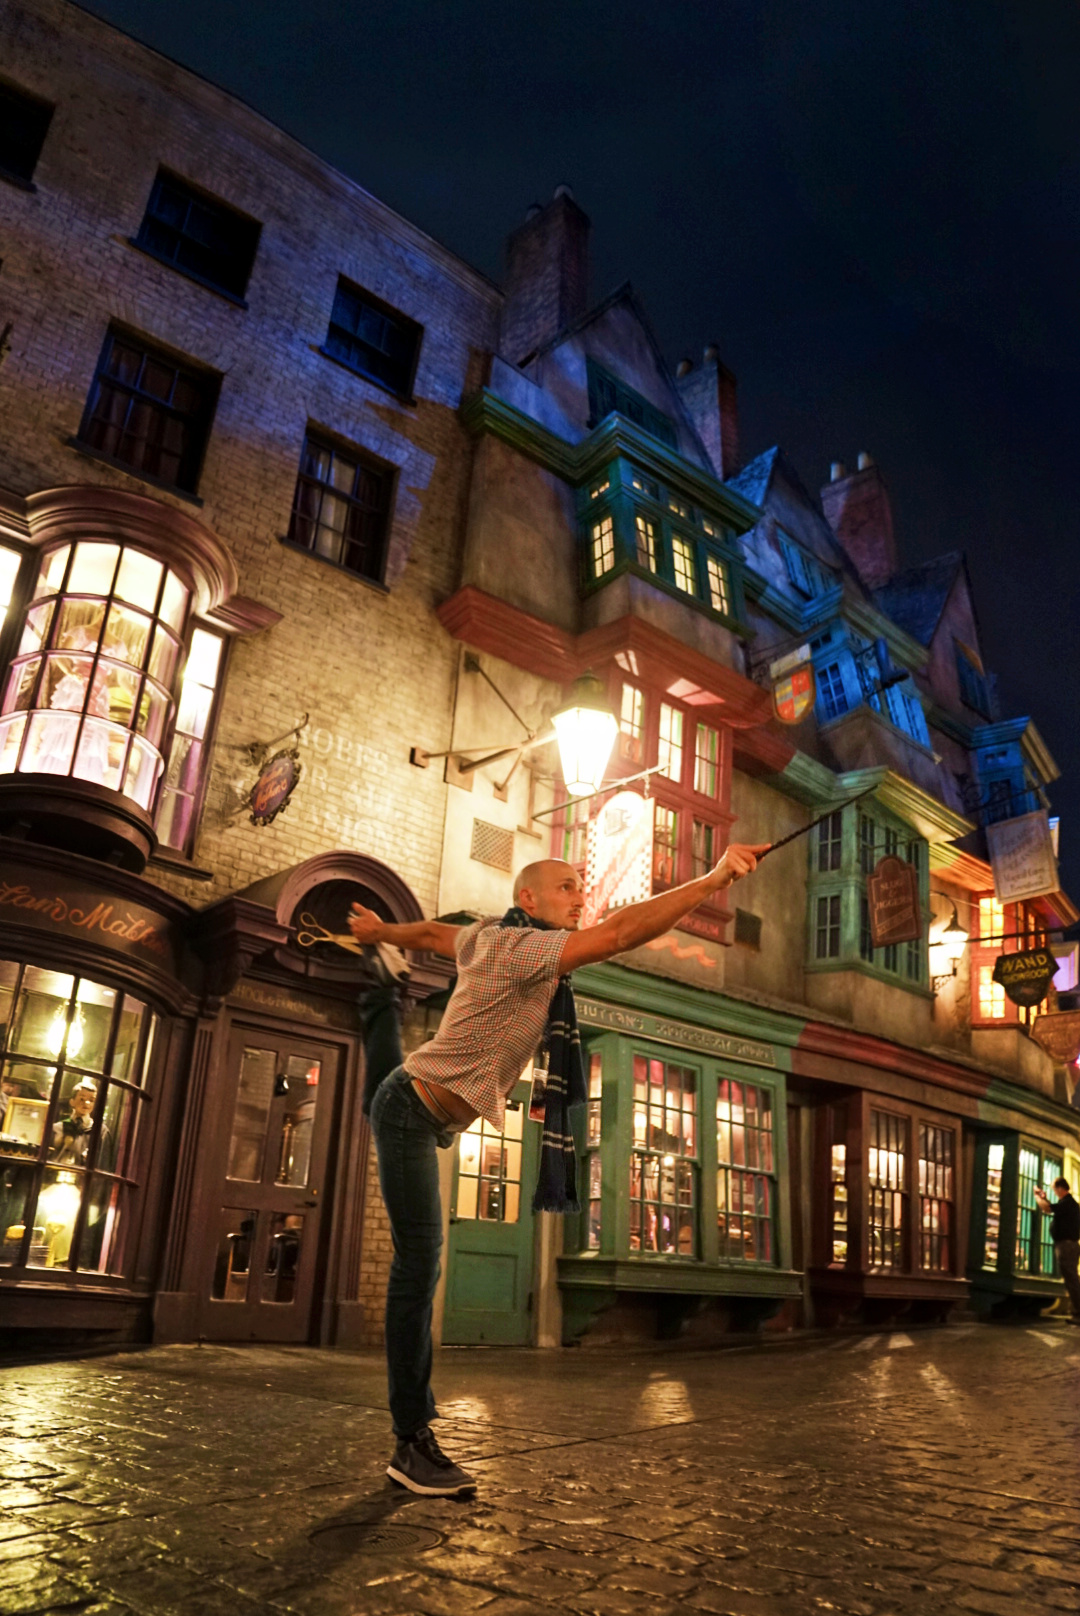 Rob Taylor in Diagon Alley Wizarding World of Harry Potter Universal Studios Florida 1